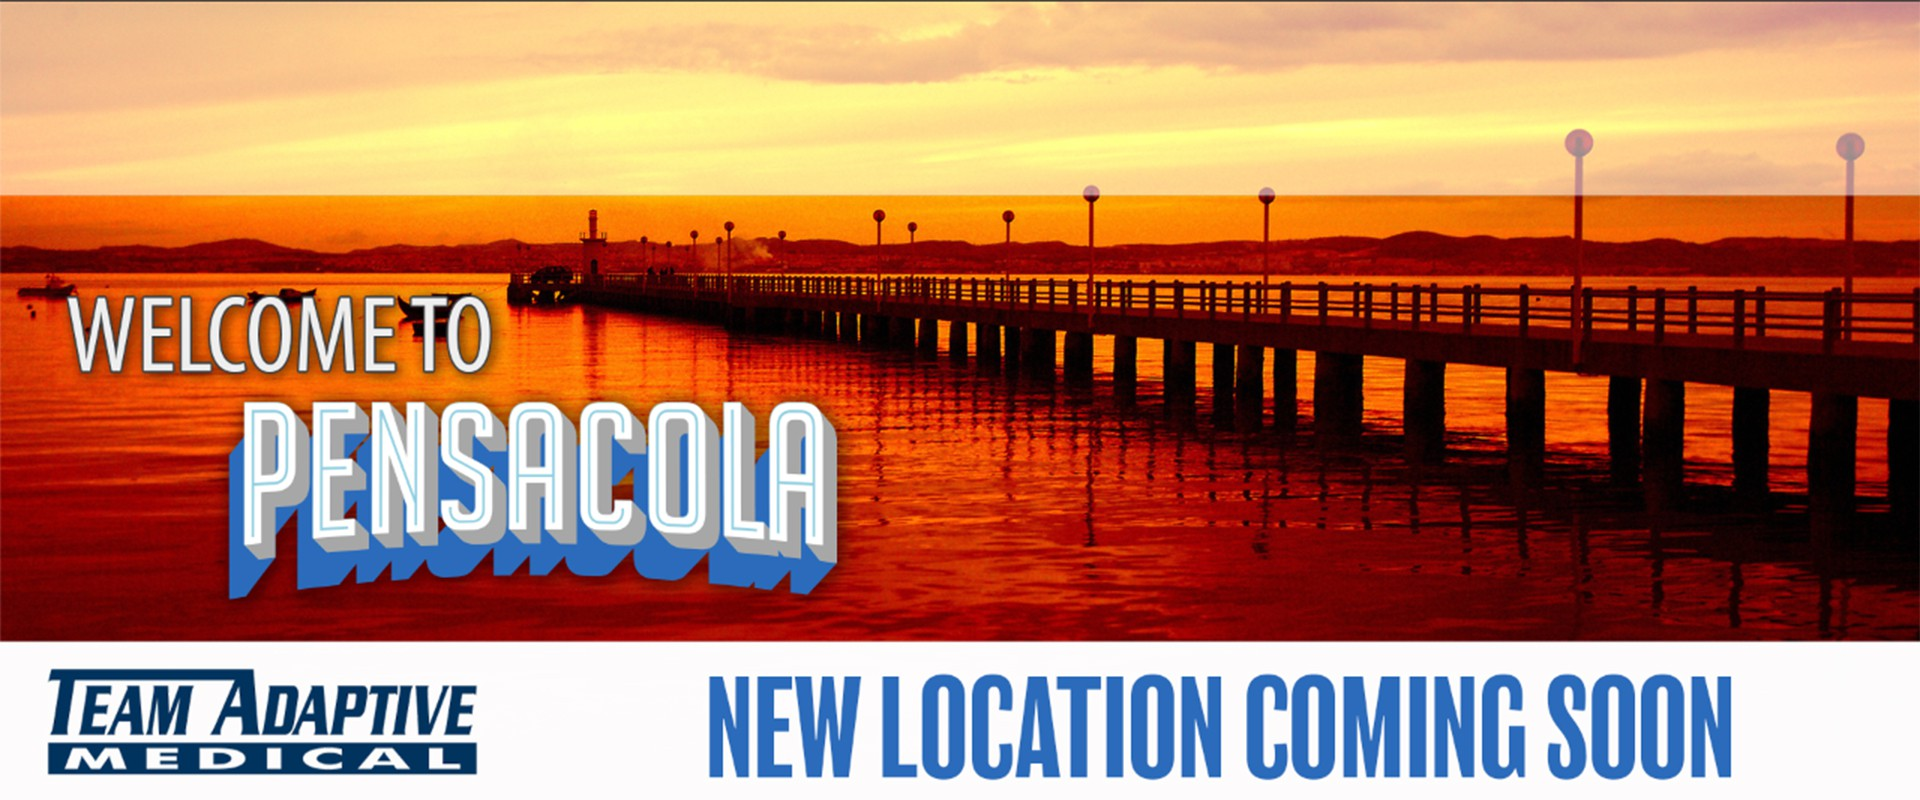 New Location - Pensacola Florida The Gulf Coast